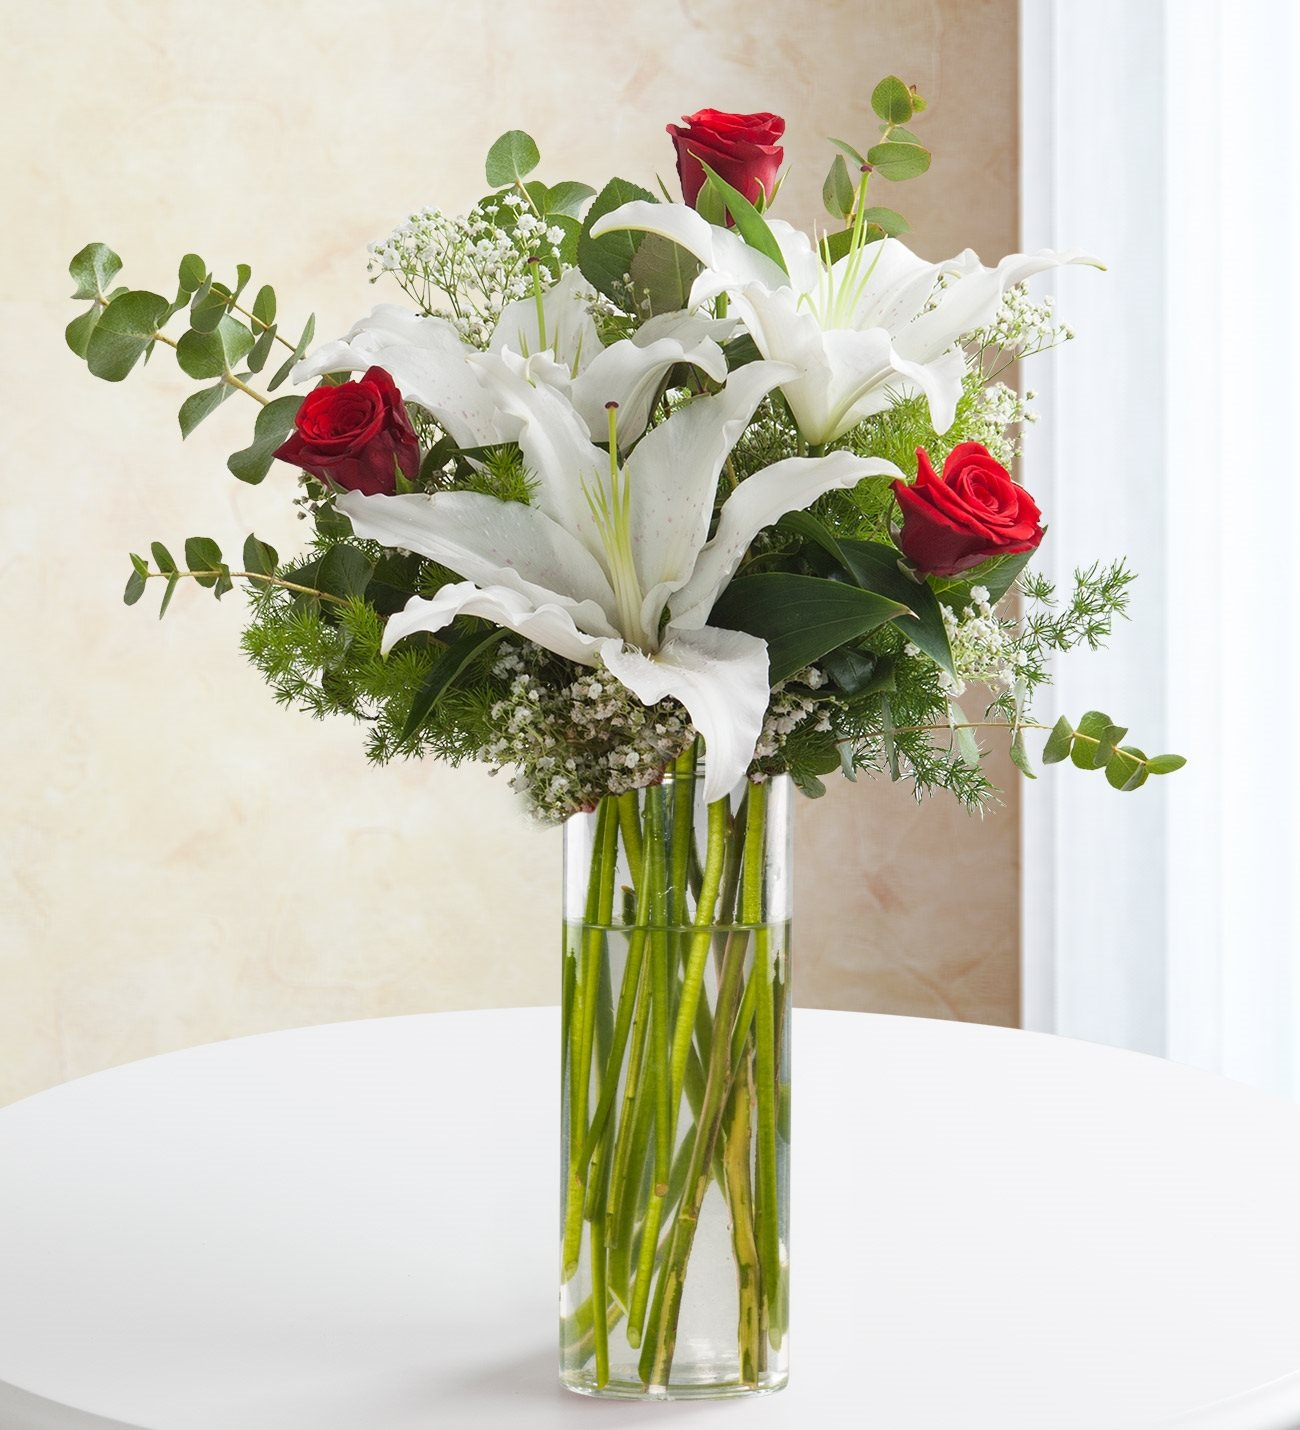 Hidden dreams roses and lilies kc143583 bouquet of 2 white lilies and 3 red roses izmirmasajfo